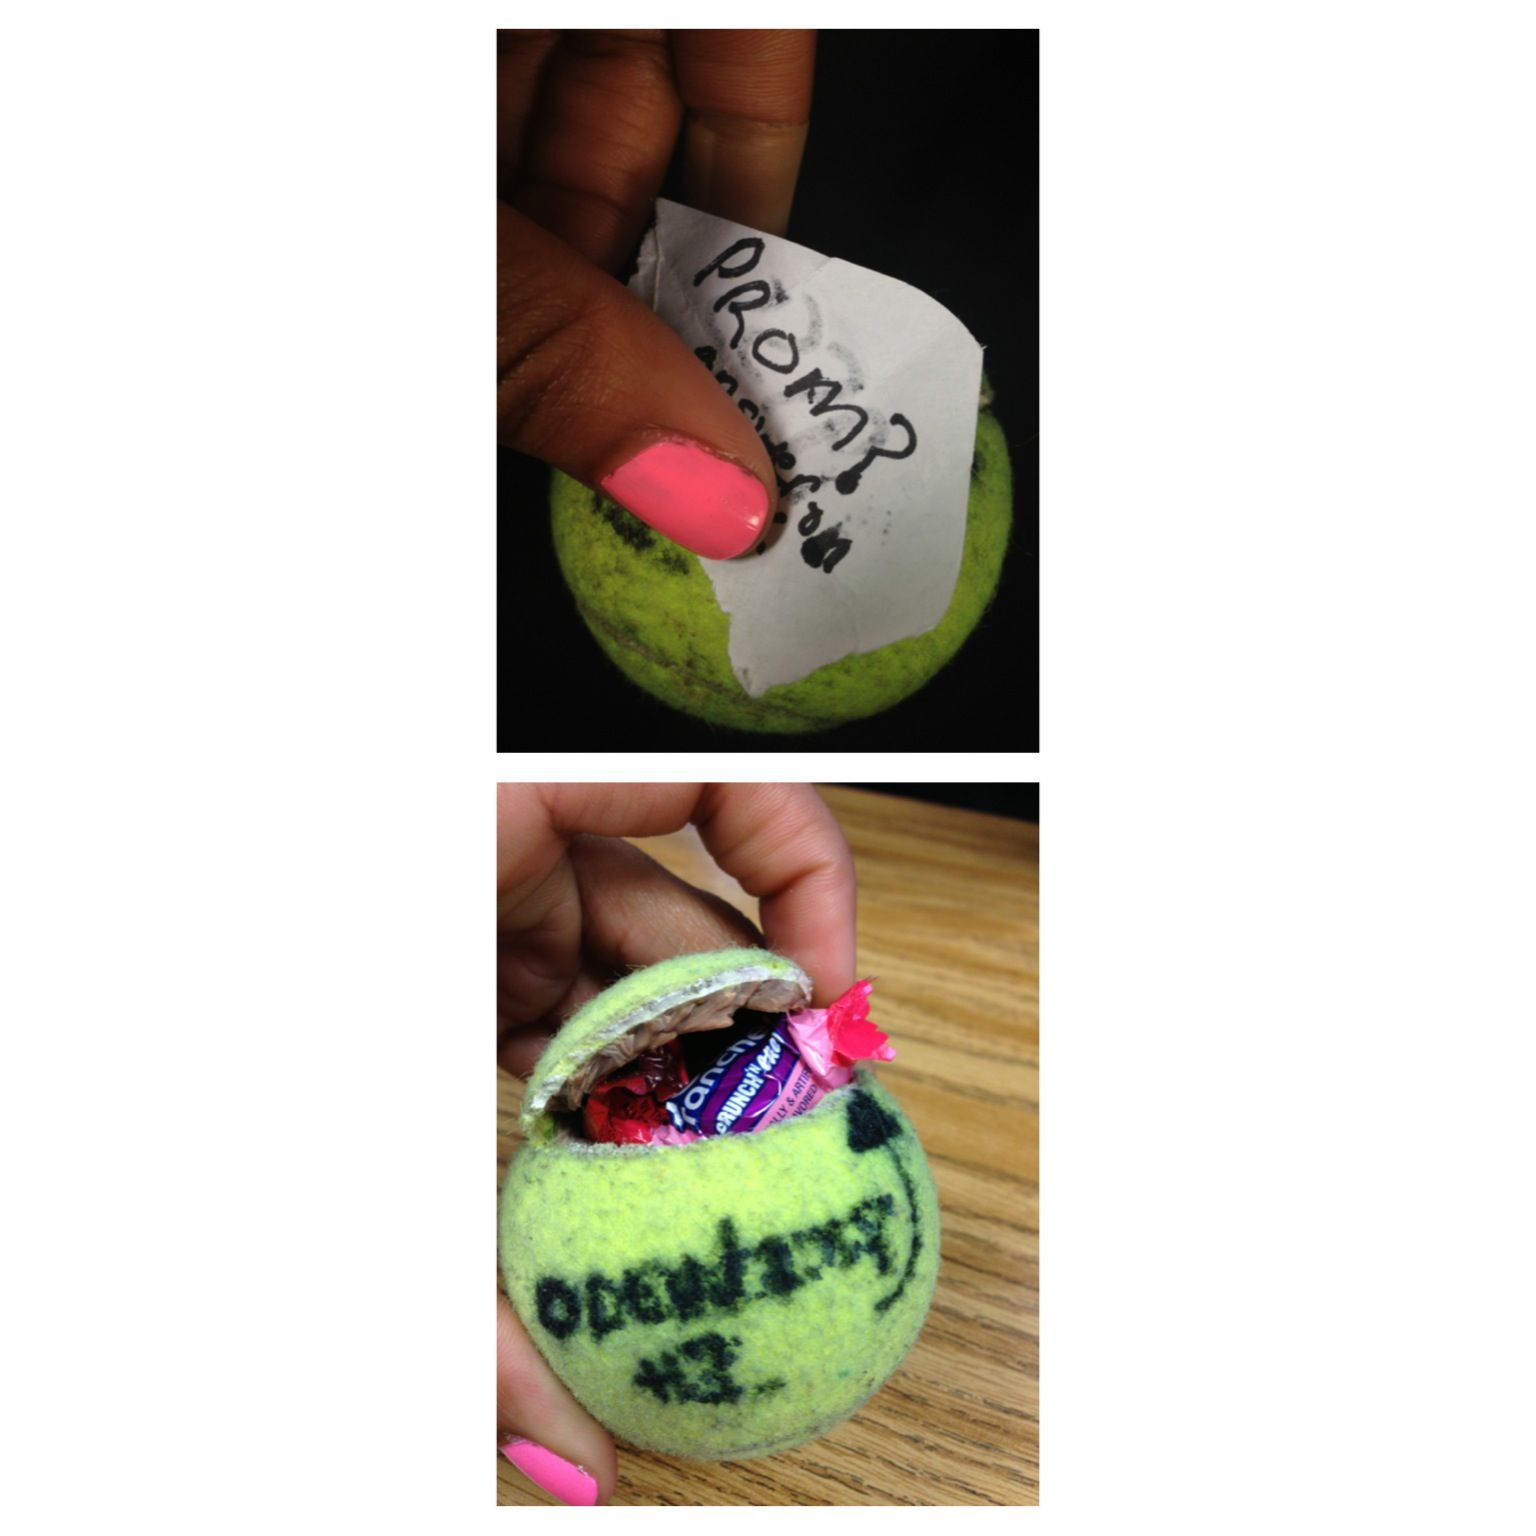 Cute Tennis Candy Prom Proposal